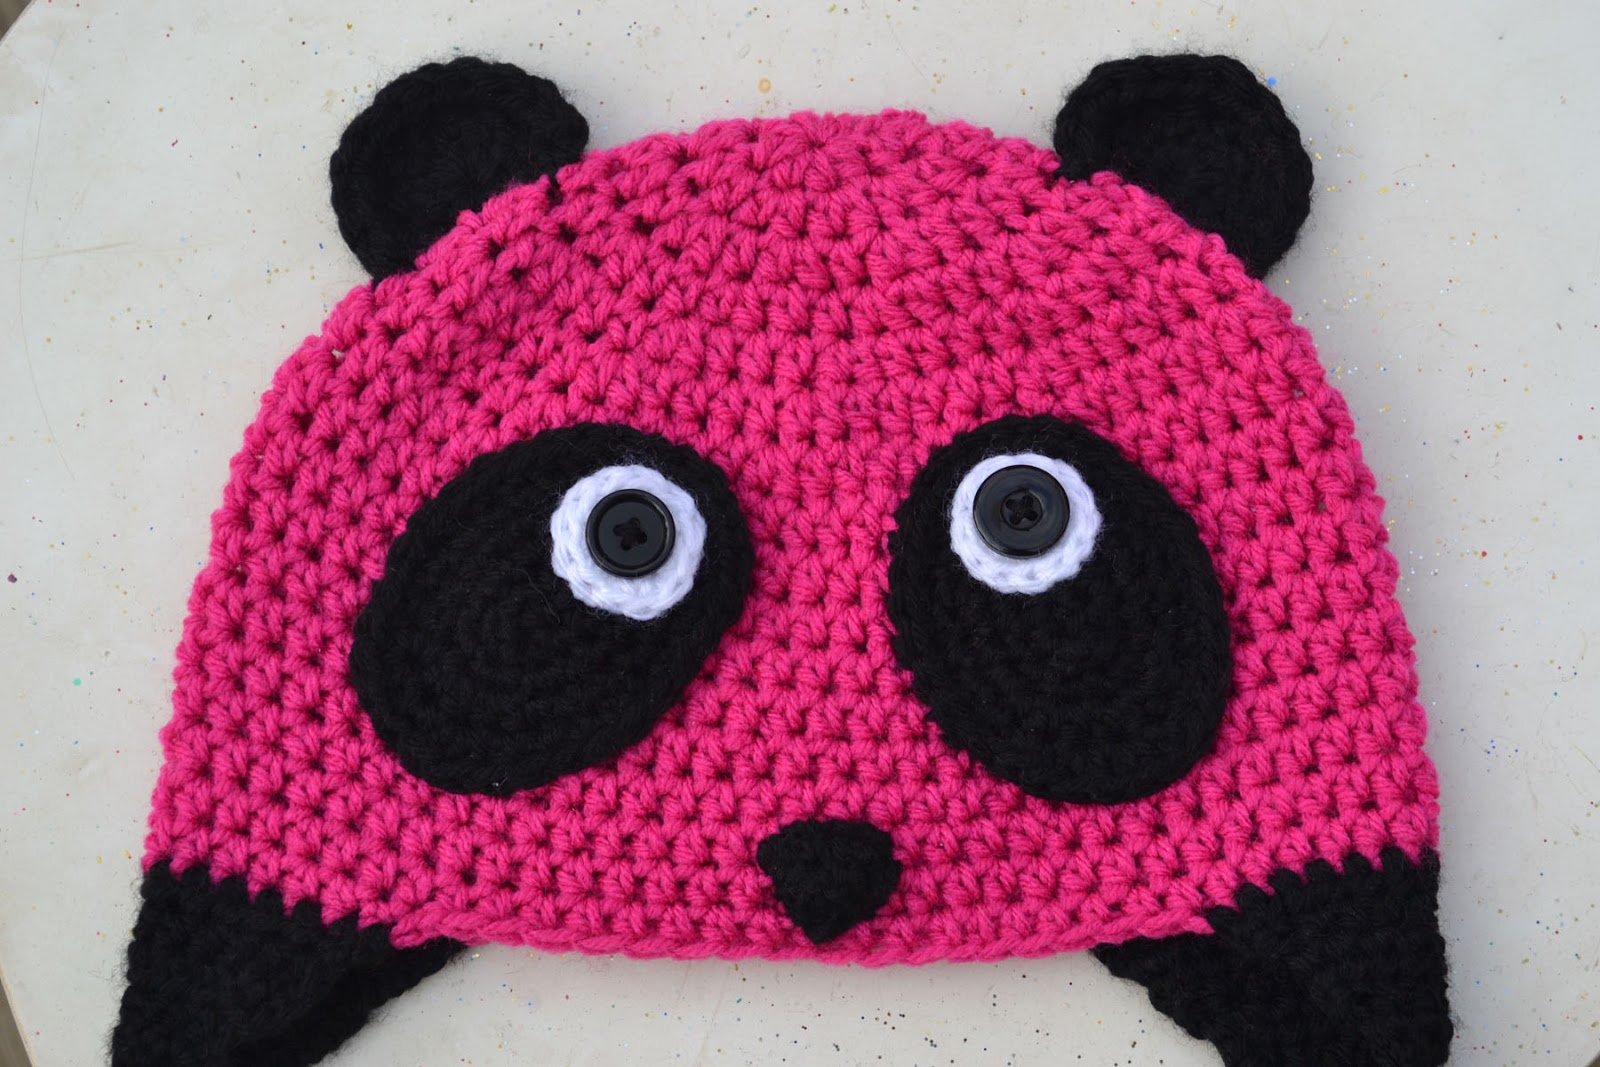 Pandas Eye Diagram Not Lossing Wiring Basic Parts Of The For Kids Crochet In Color Pink Panda Rh Crochetincolor Blogspot Com Cubs Body A Experimental Setup B